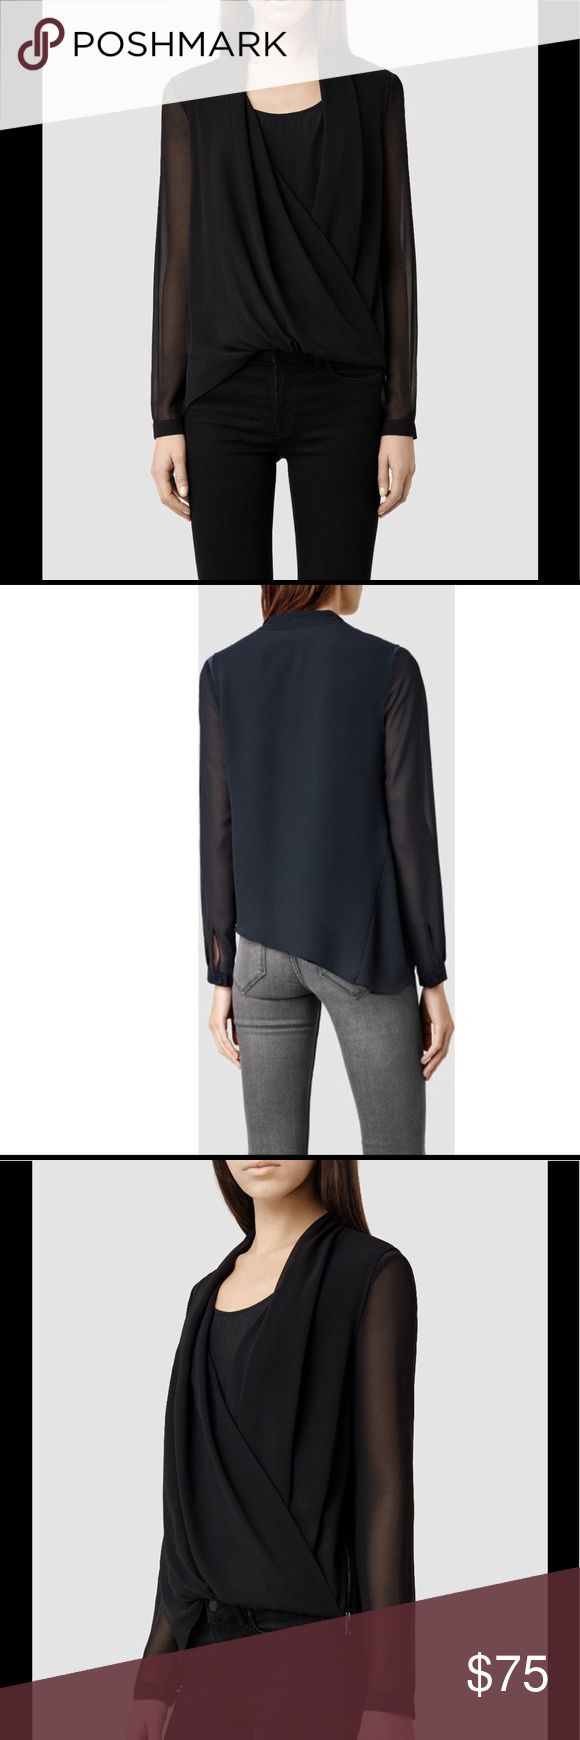 All Saints Abi silk top US 2 This is the gorgeous Allsaints Abi Sleeve top. 100% silk Update your luxe separates with this chic wrap top from AllSaints.   This dual layer piece is designed with a inner cotton top with an outer draped layer complete with three quarter length sleeves. Effortlessly classy, and easy to build to outfit around, team with skinny fit trousers and courts for sleek 9-5 outfitting. All Saints Tops Crop Tops